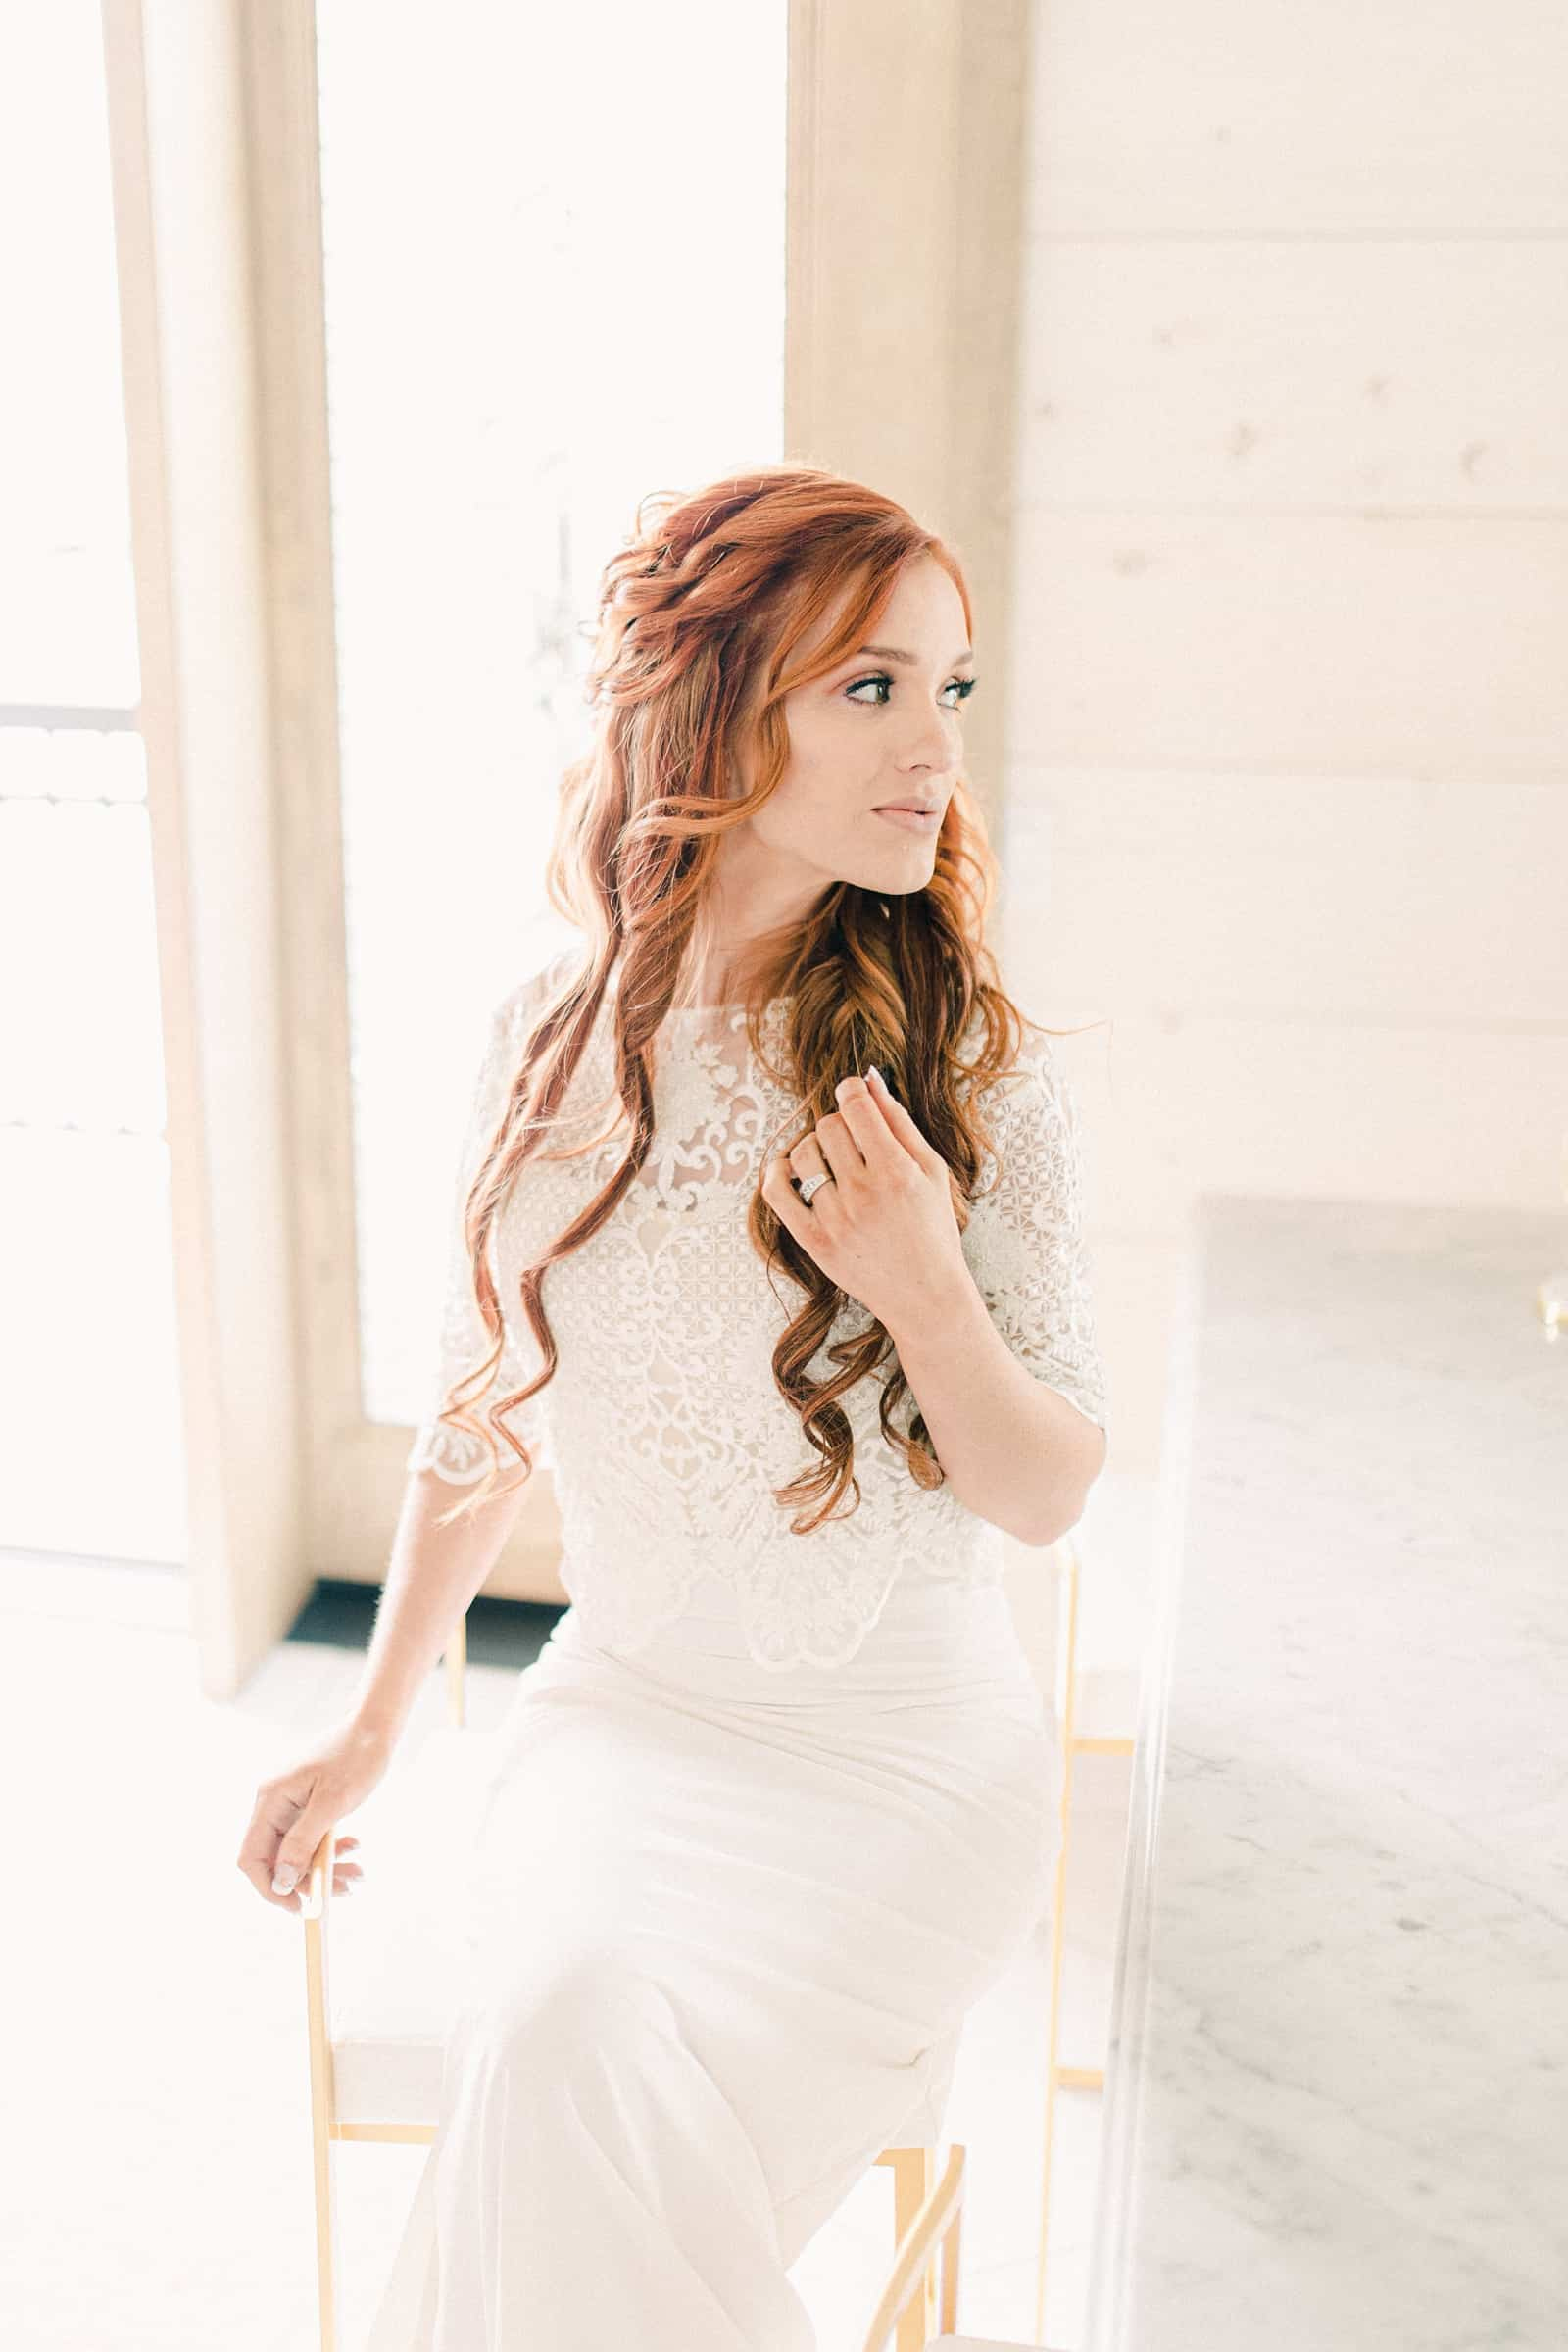 Freckled Fox wedding, redhead bride with long curly wedding hairstyle